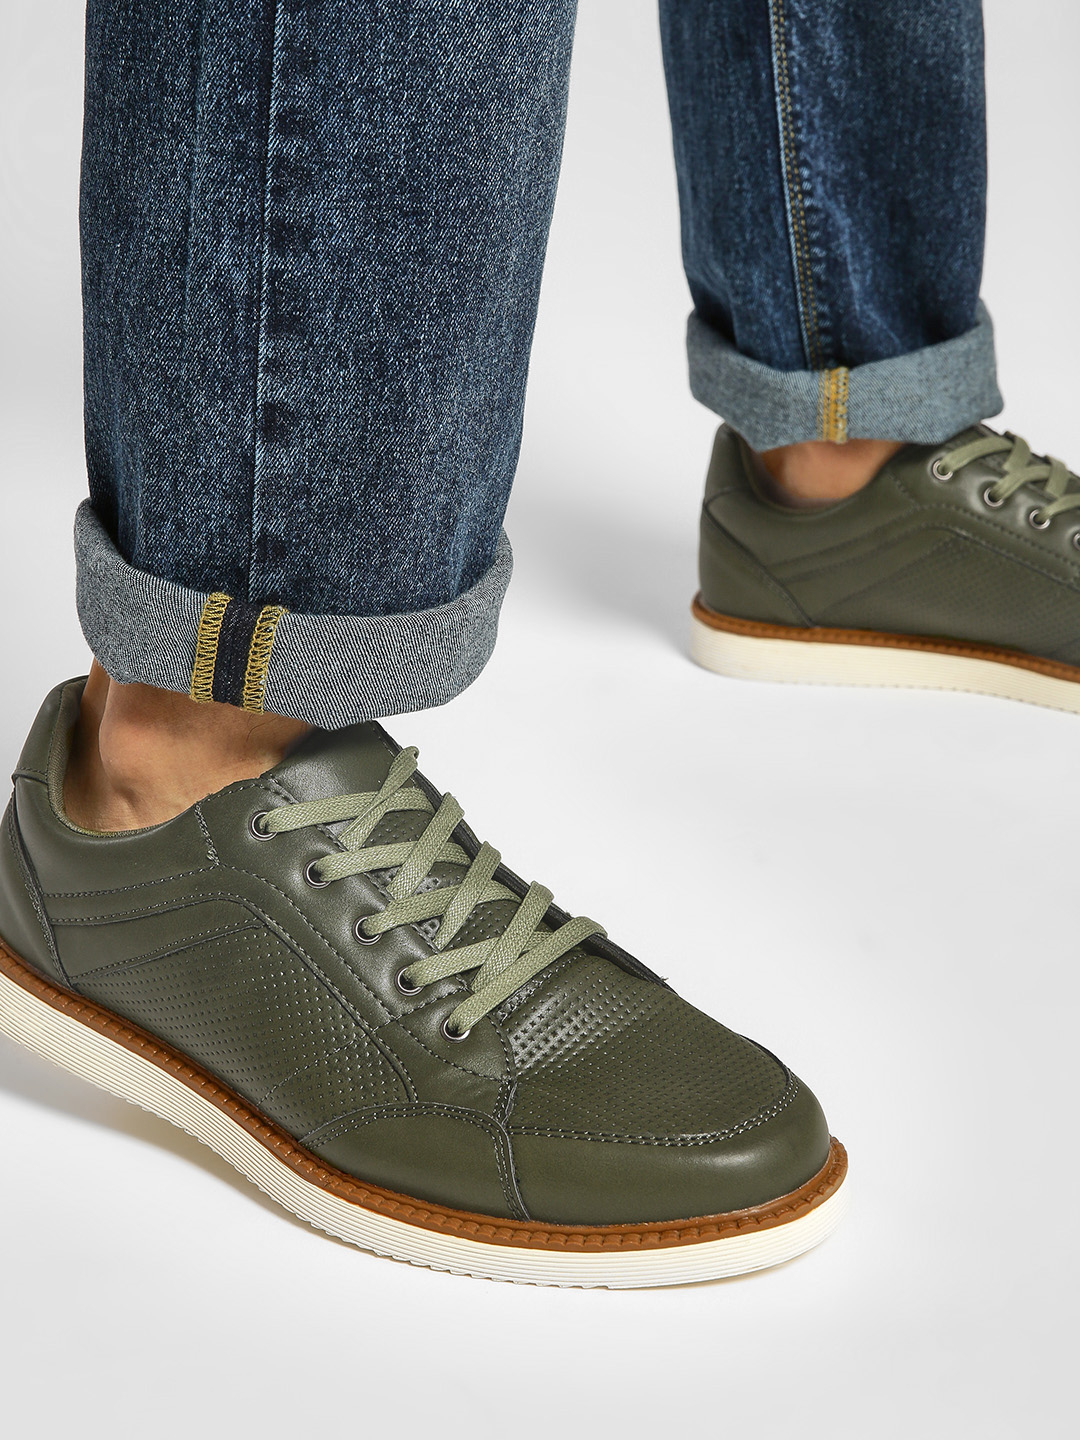 Kindred Green Panelled Gum Sole Sneakers 1